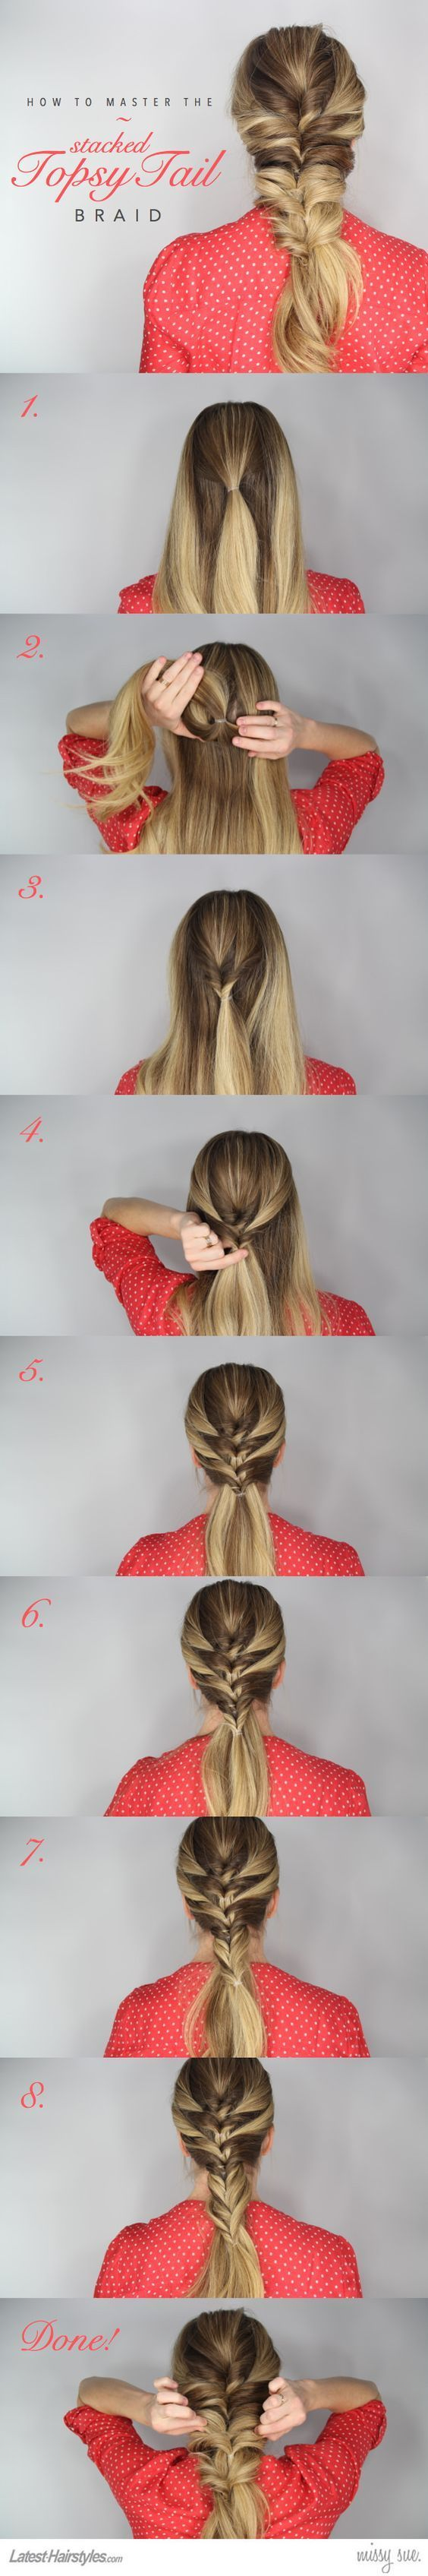 simple and easy hairstyle tutorials for your daily look hair